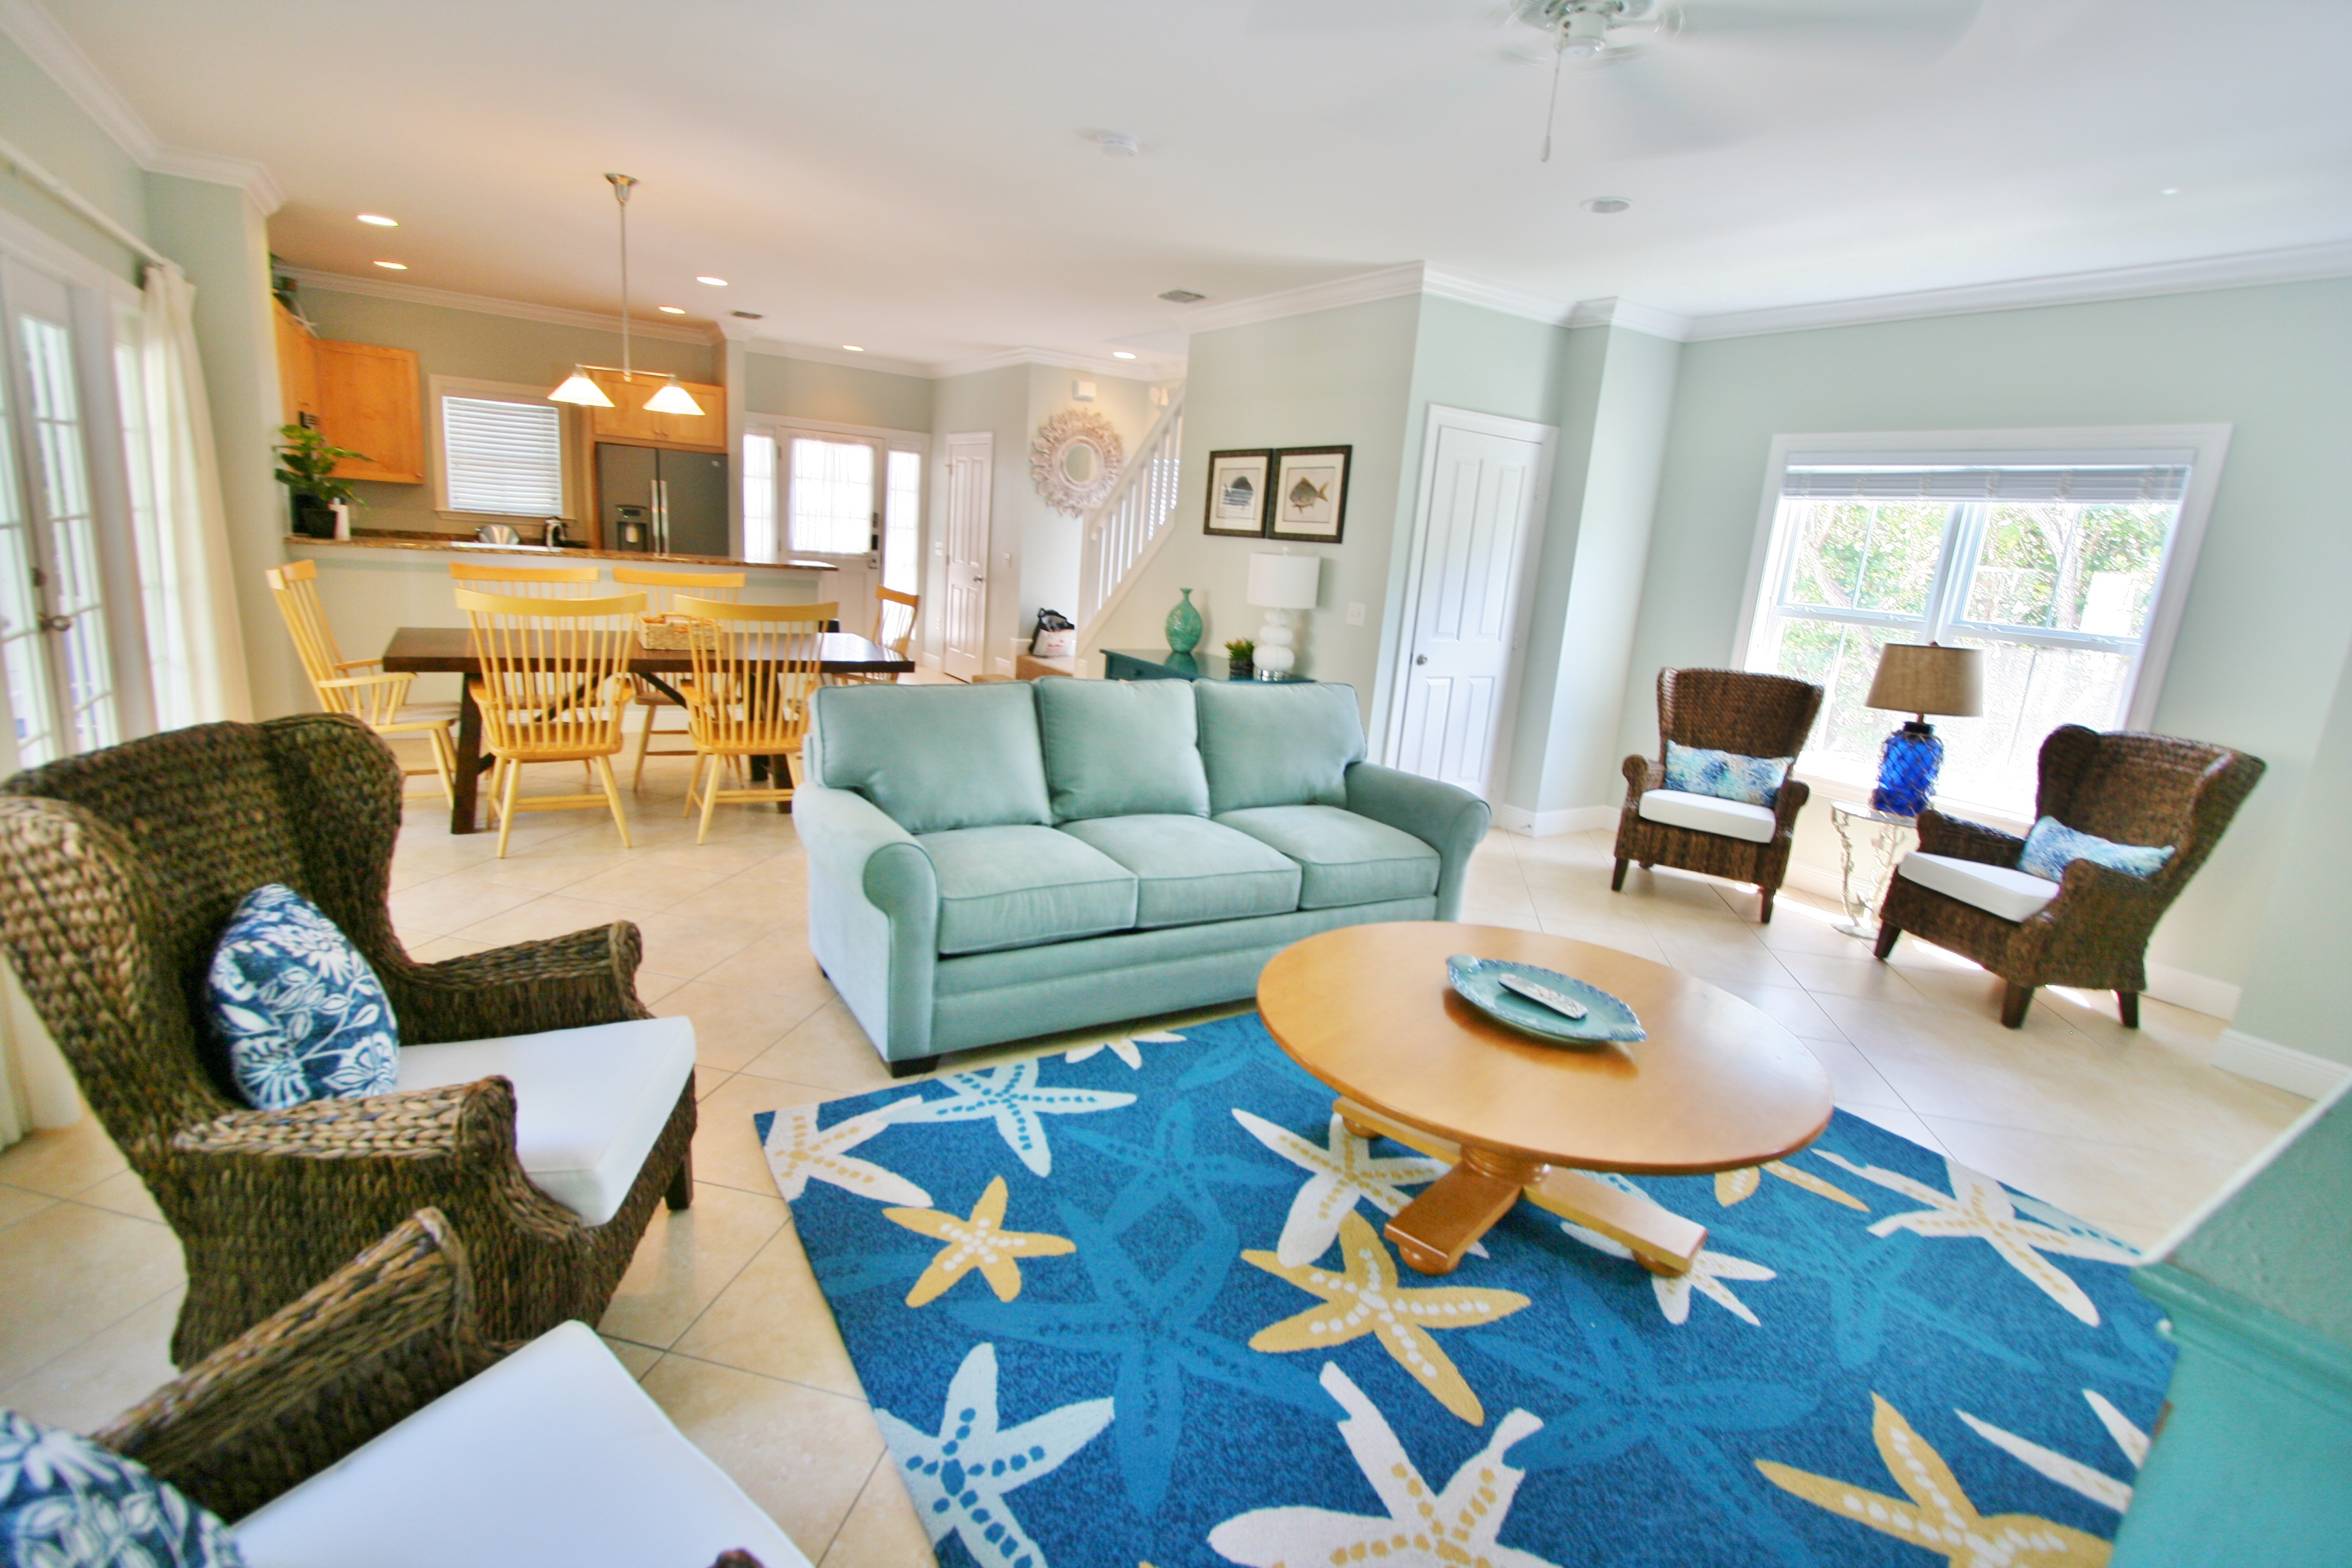 CORAL LAGOON VACATION RENTAL HOMES Coral Lagoon Vacation Rentals